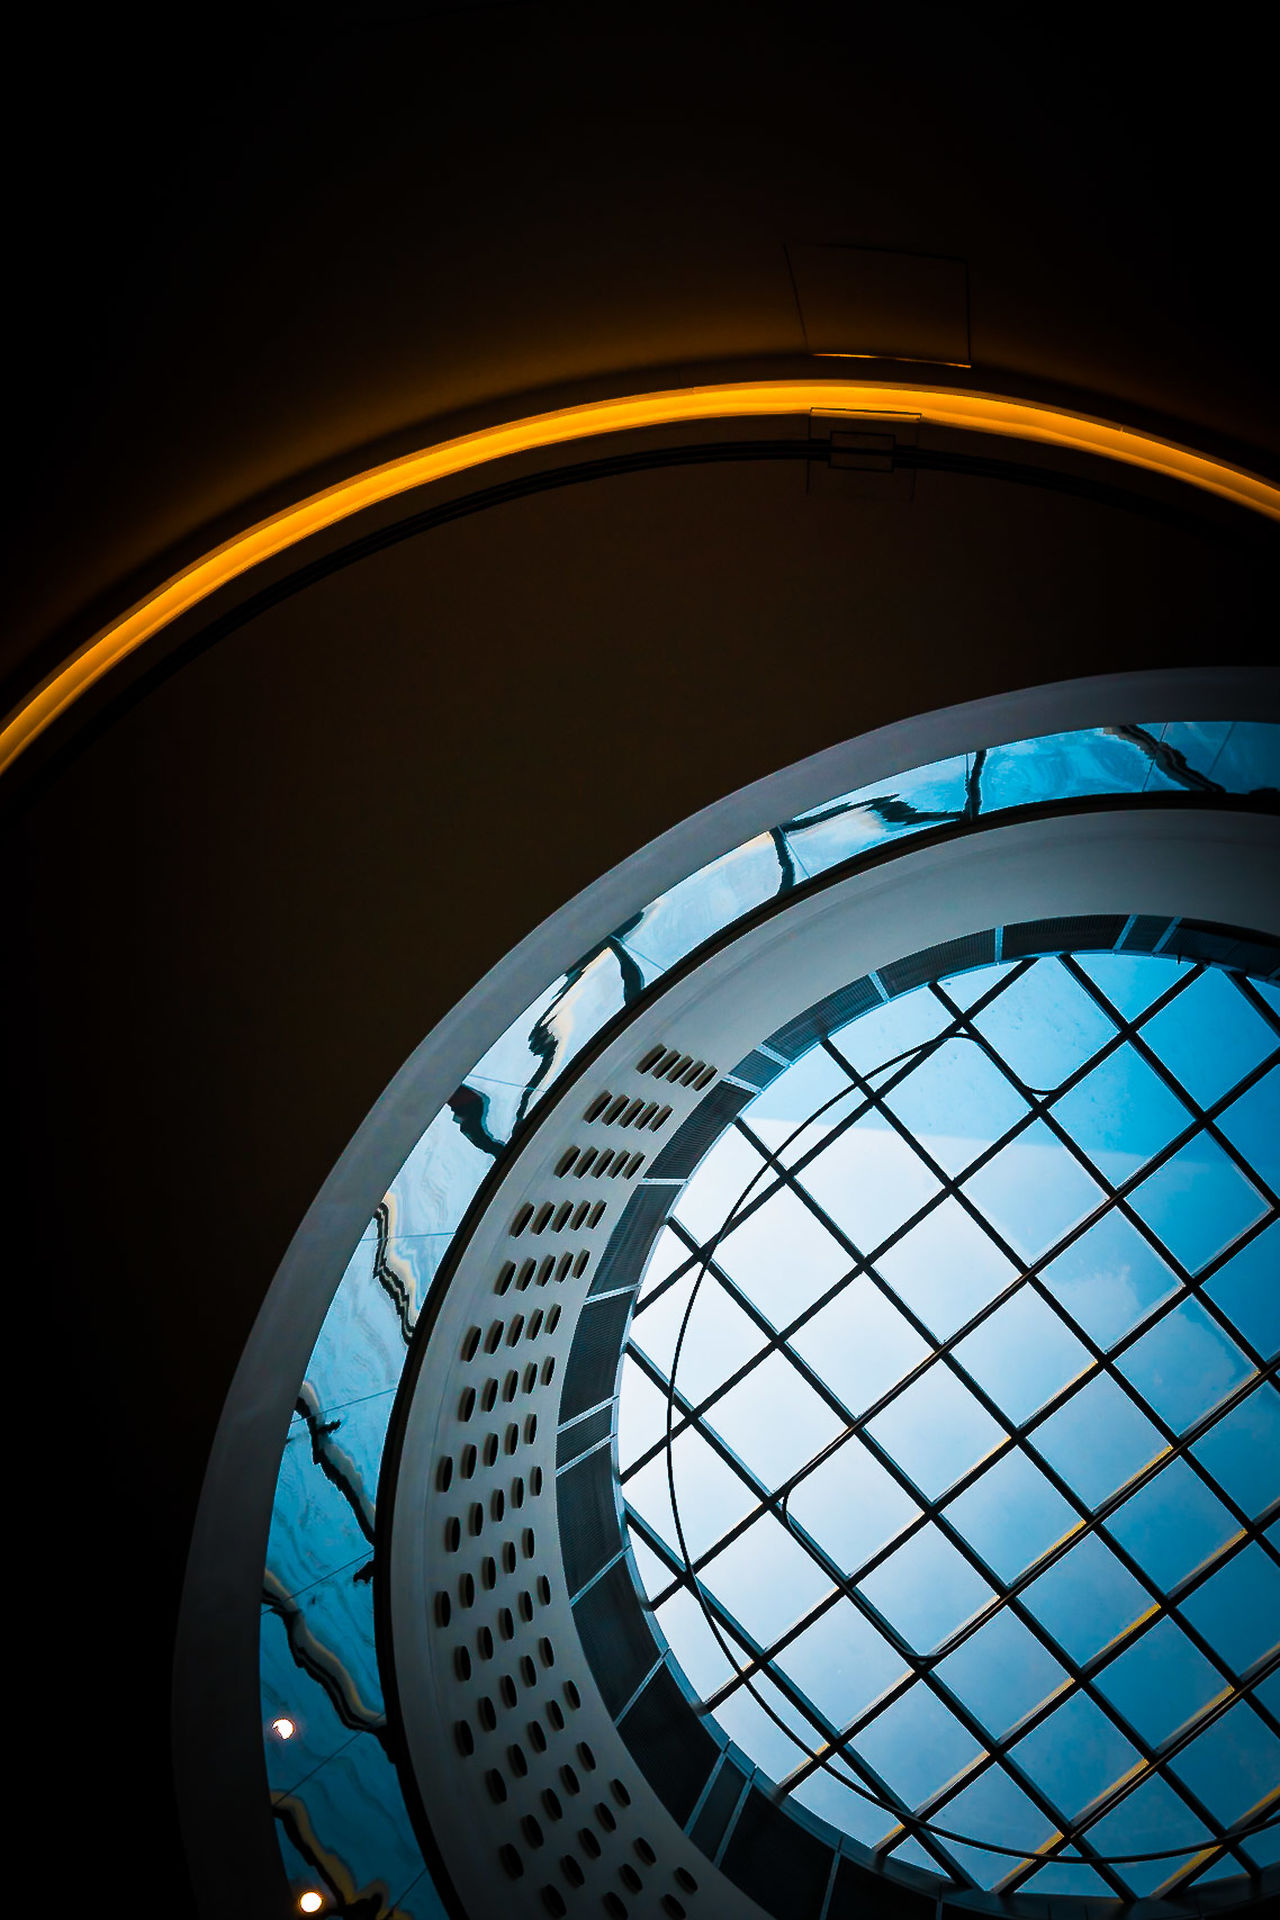 ARCHITECT Architectural Detail Architectural Feature Architecture Architecture Architecture_collection Built Structure Circle Close-up Curves Curves And Lines Day Grid Indoors  Low Angle View Minimal Minimalism Minimalist Minimalist Architecture Minimalist Photography  Minimalistic Minimalobsession No People Skylight Spiral Minimalist Architecture